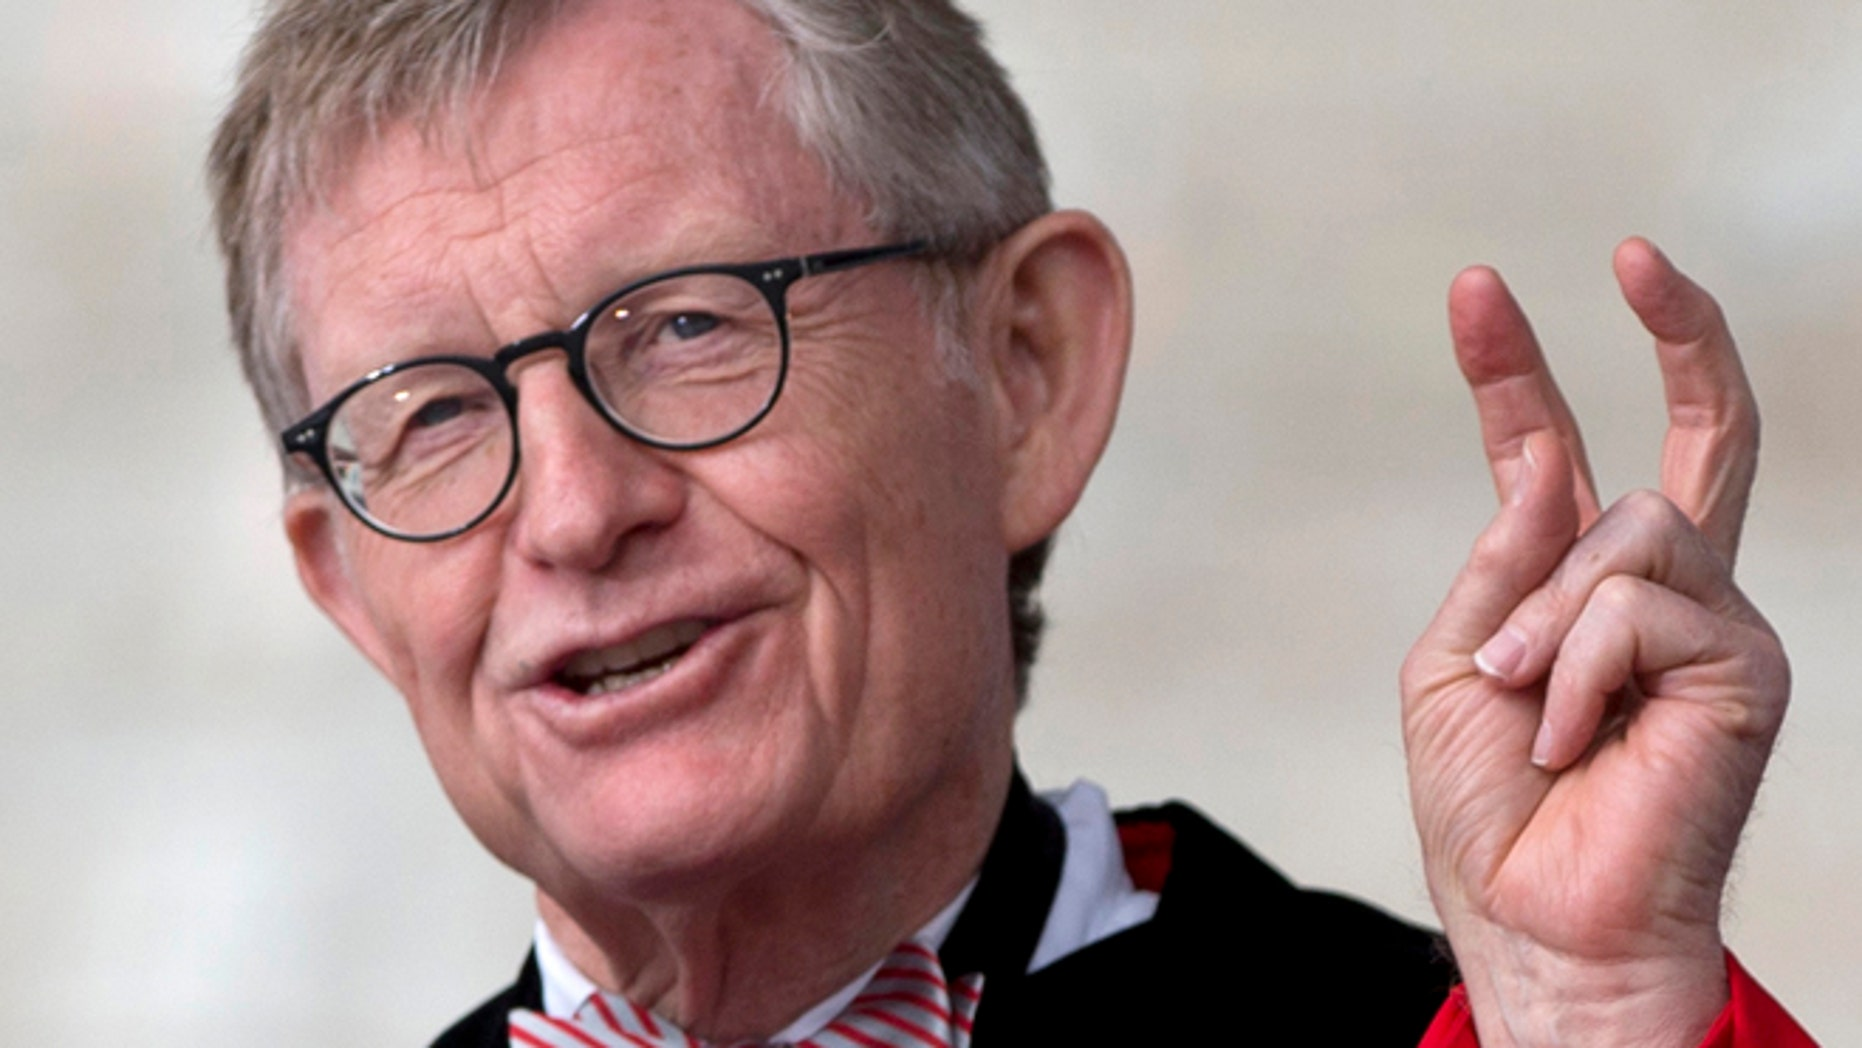 May 5, 2013: Ohio State president E. Gordon Gee speaks during the Ohio State University spring commencement in Columbus, Ohio. Gee told a university committee last December that Notre Dame wasn't invited to join the Big Ten because they're not good partners while also jokingly saying that those damn Catholics cant be trusted. (AP)